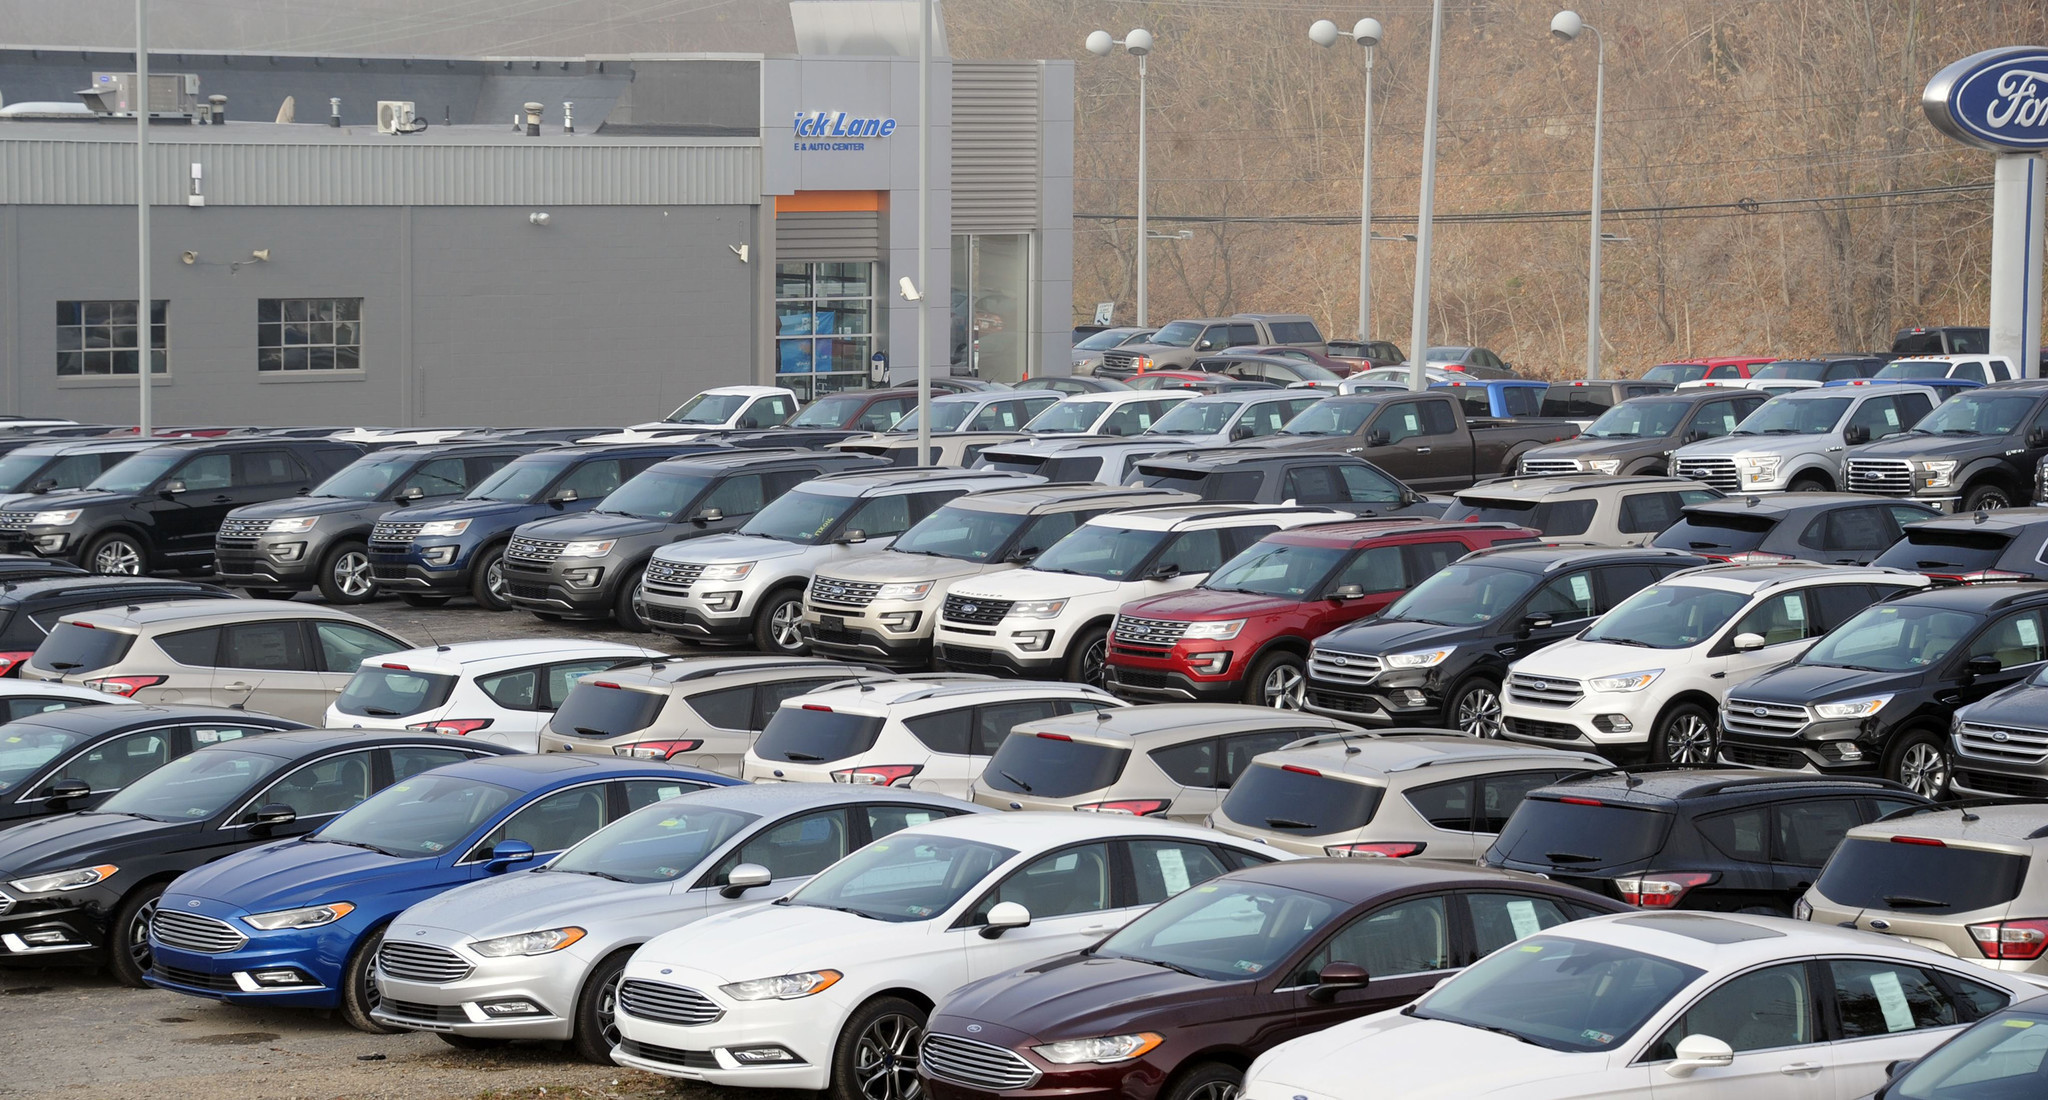 auto sales expected to match last year 39 s record but may be plateauing la times. Black Bedroom Furniture Sets. Home Design Ideas